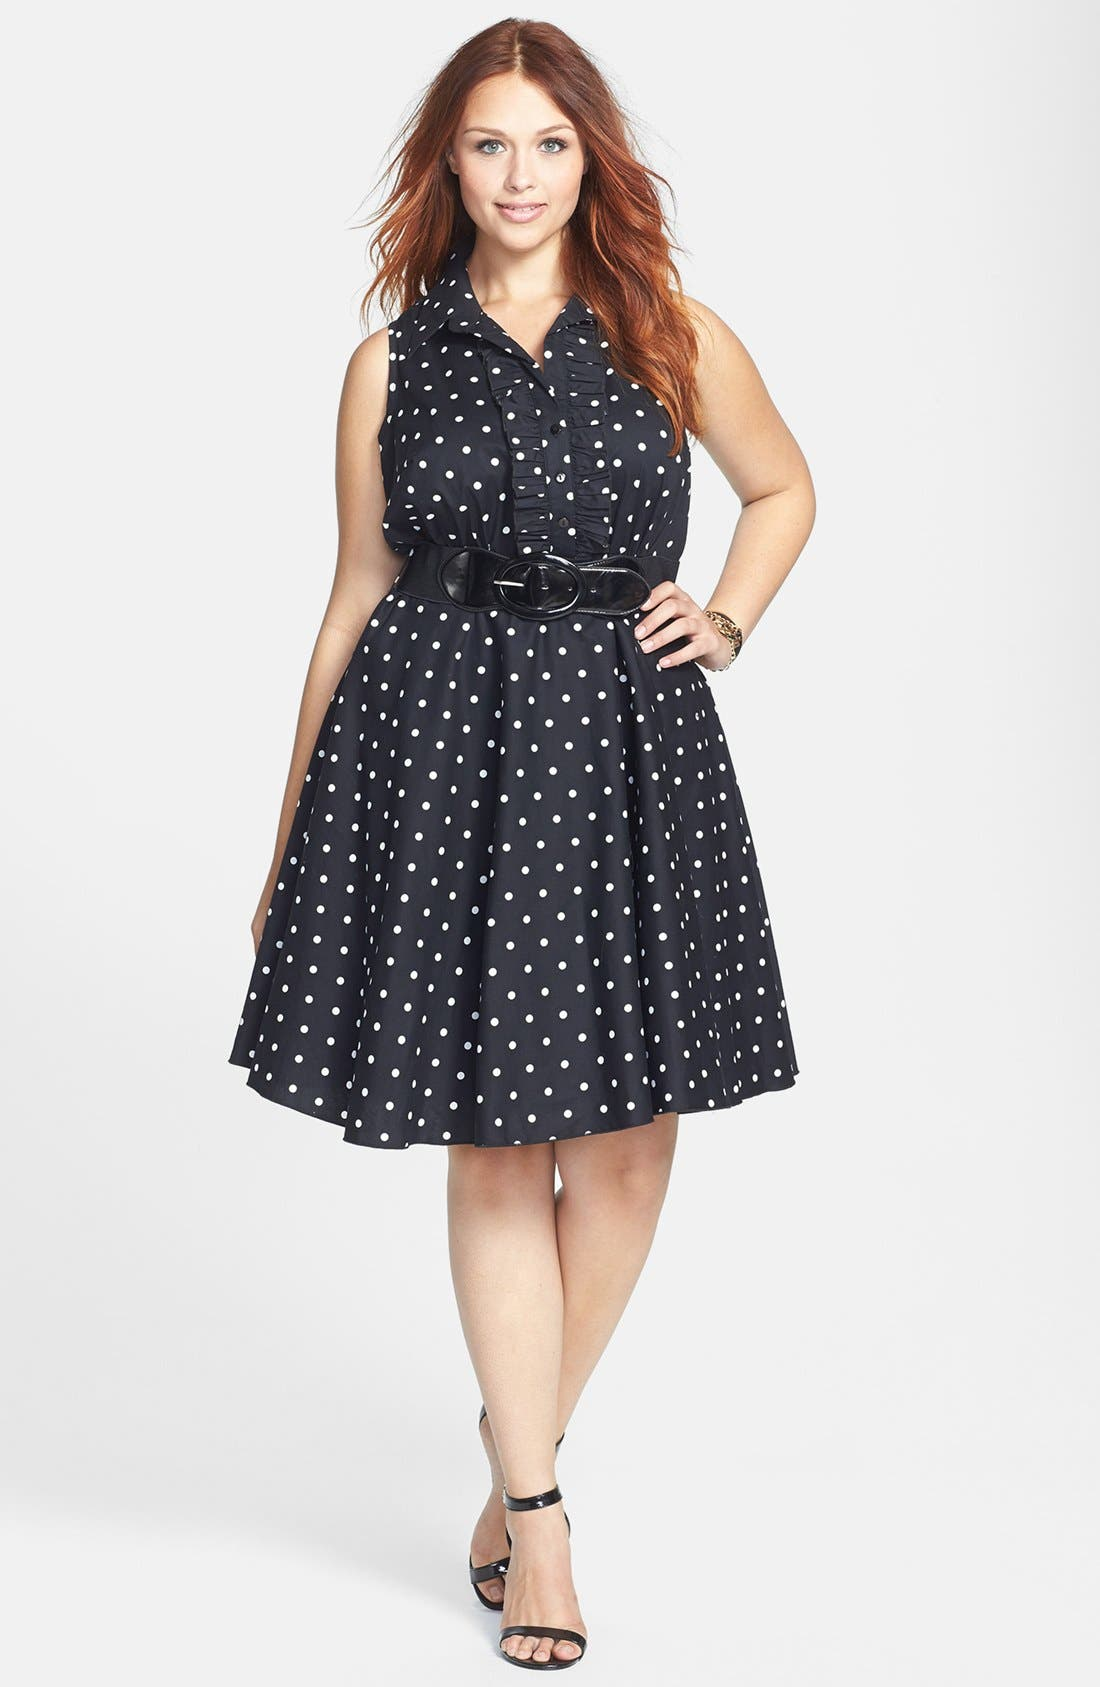 Alternate Image 1 Selected - City Chic Polka Dot Cotton Sateen Fit & Flare Dress (Plus Size)